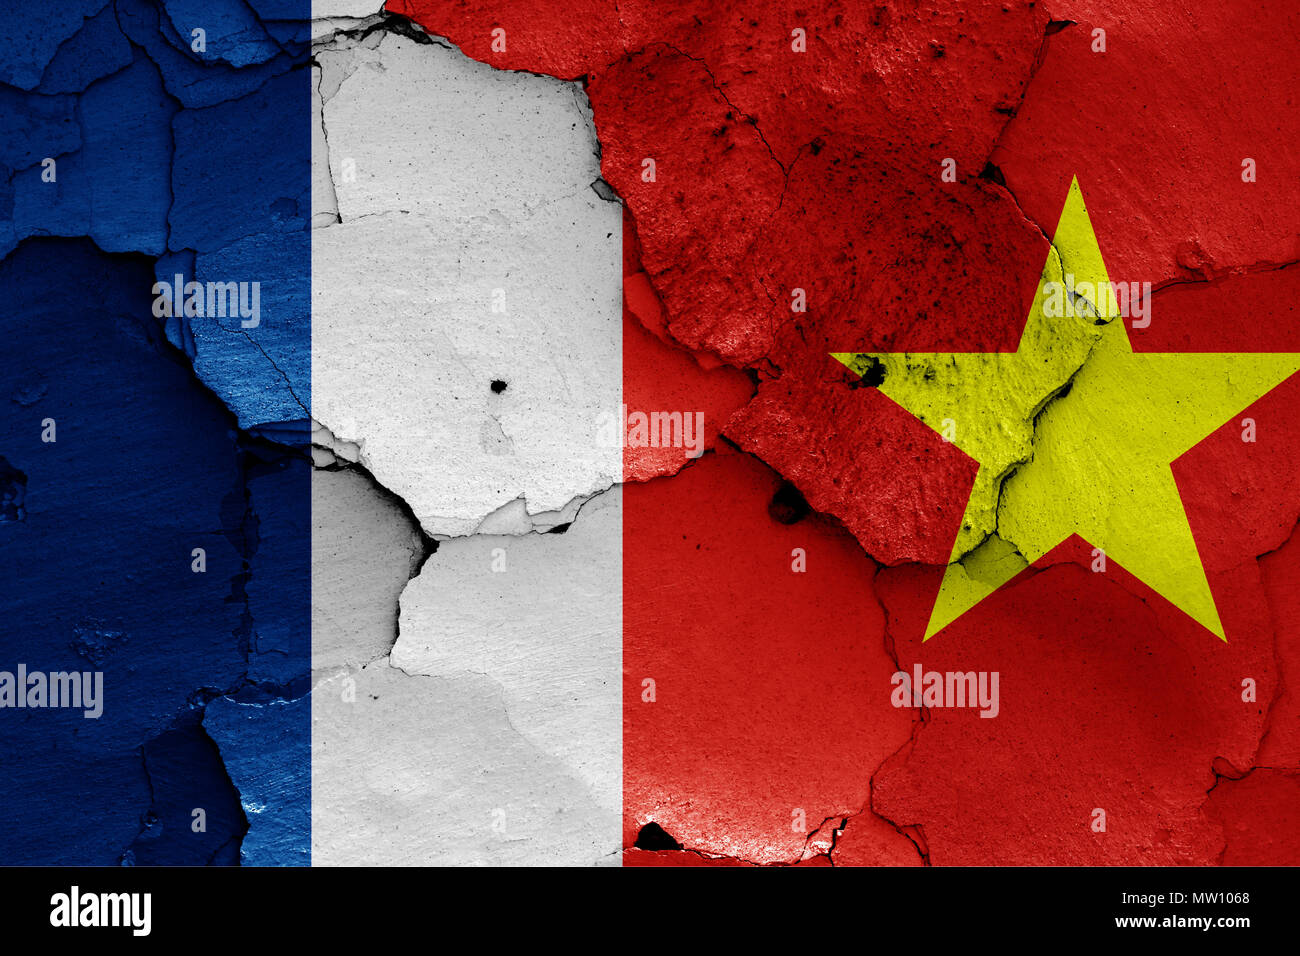 flags of French Indochina and North Vietnam - Stock Image